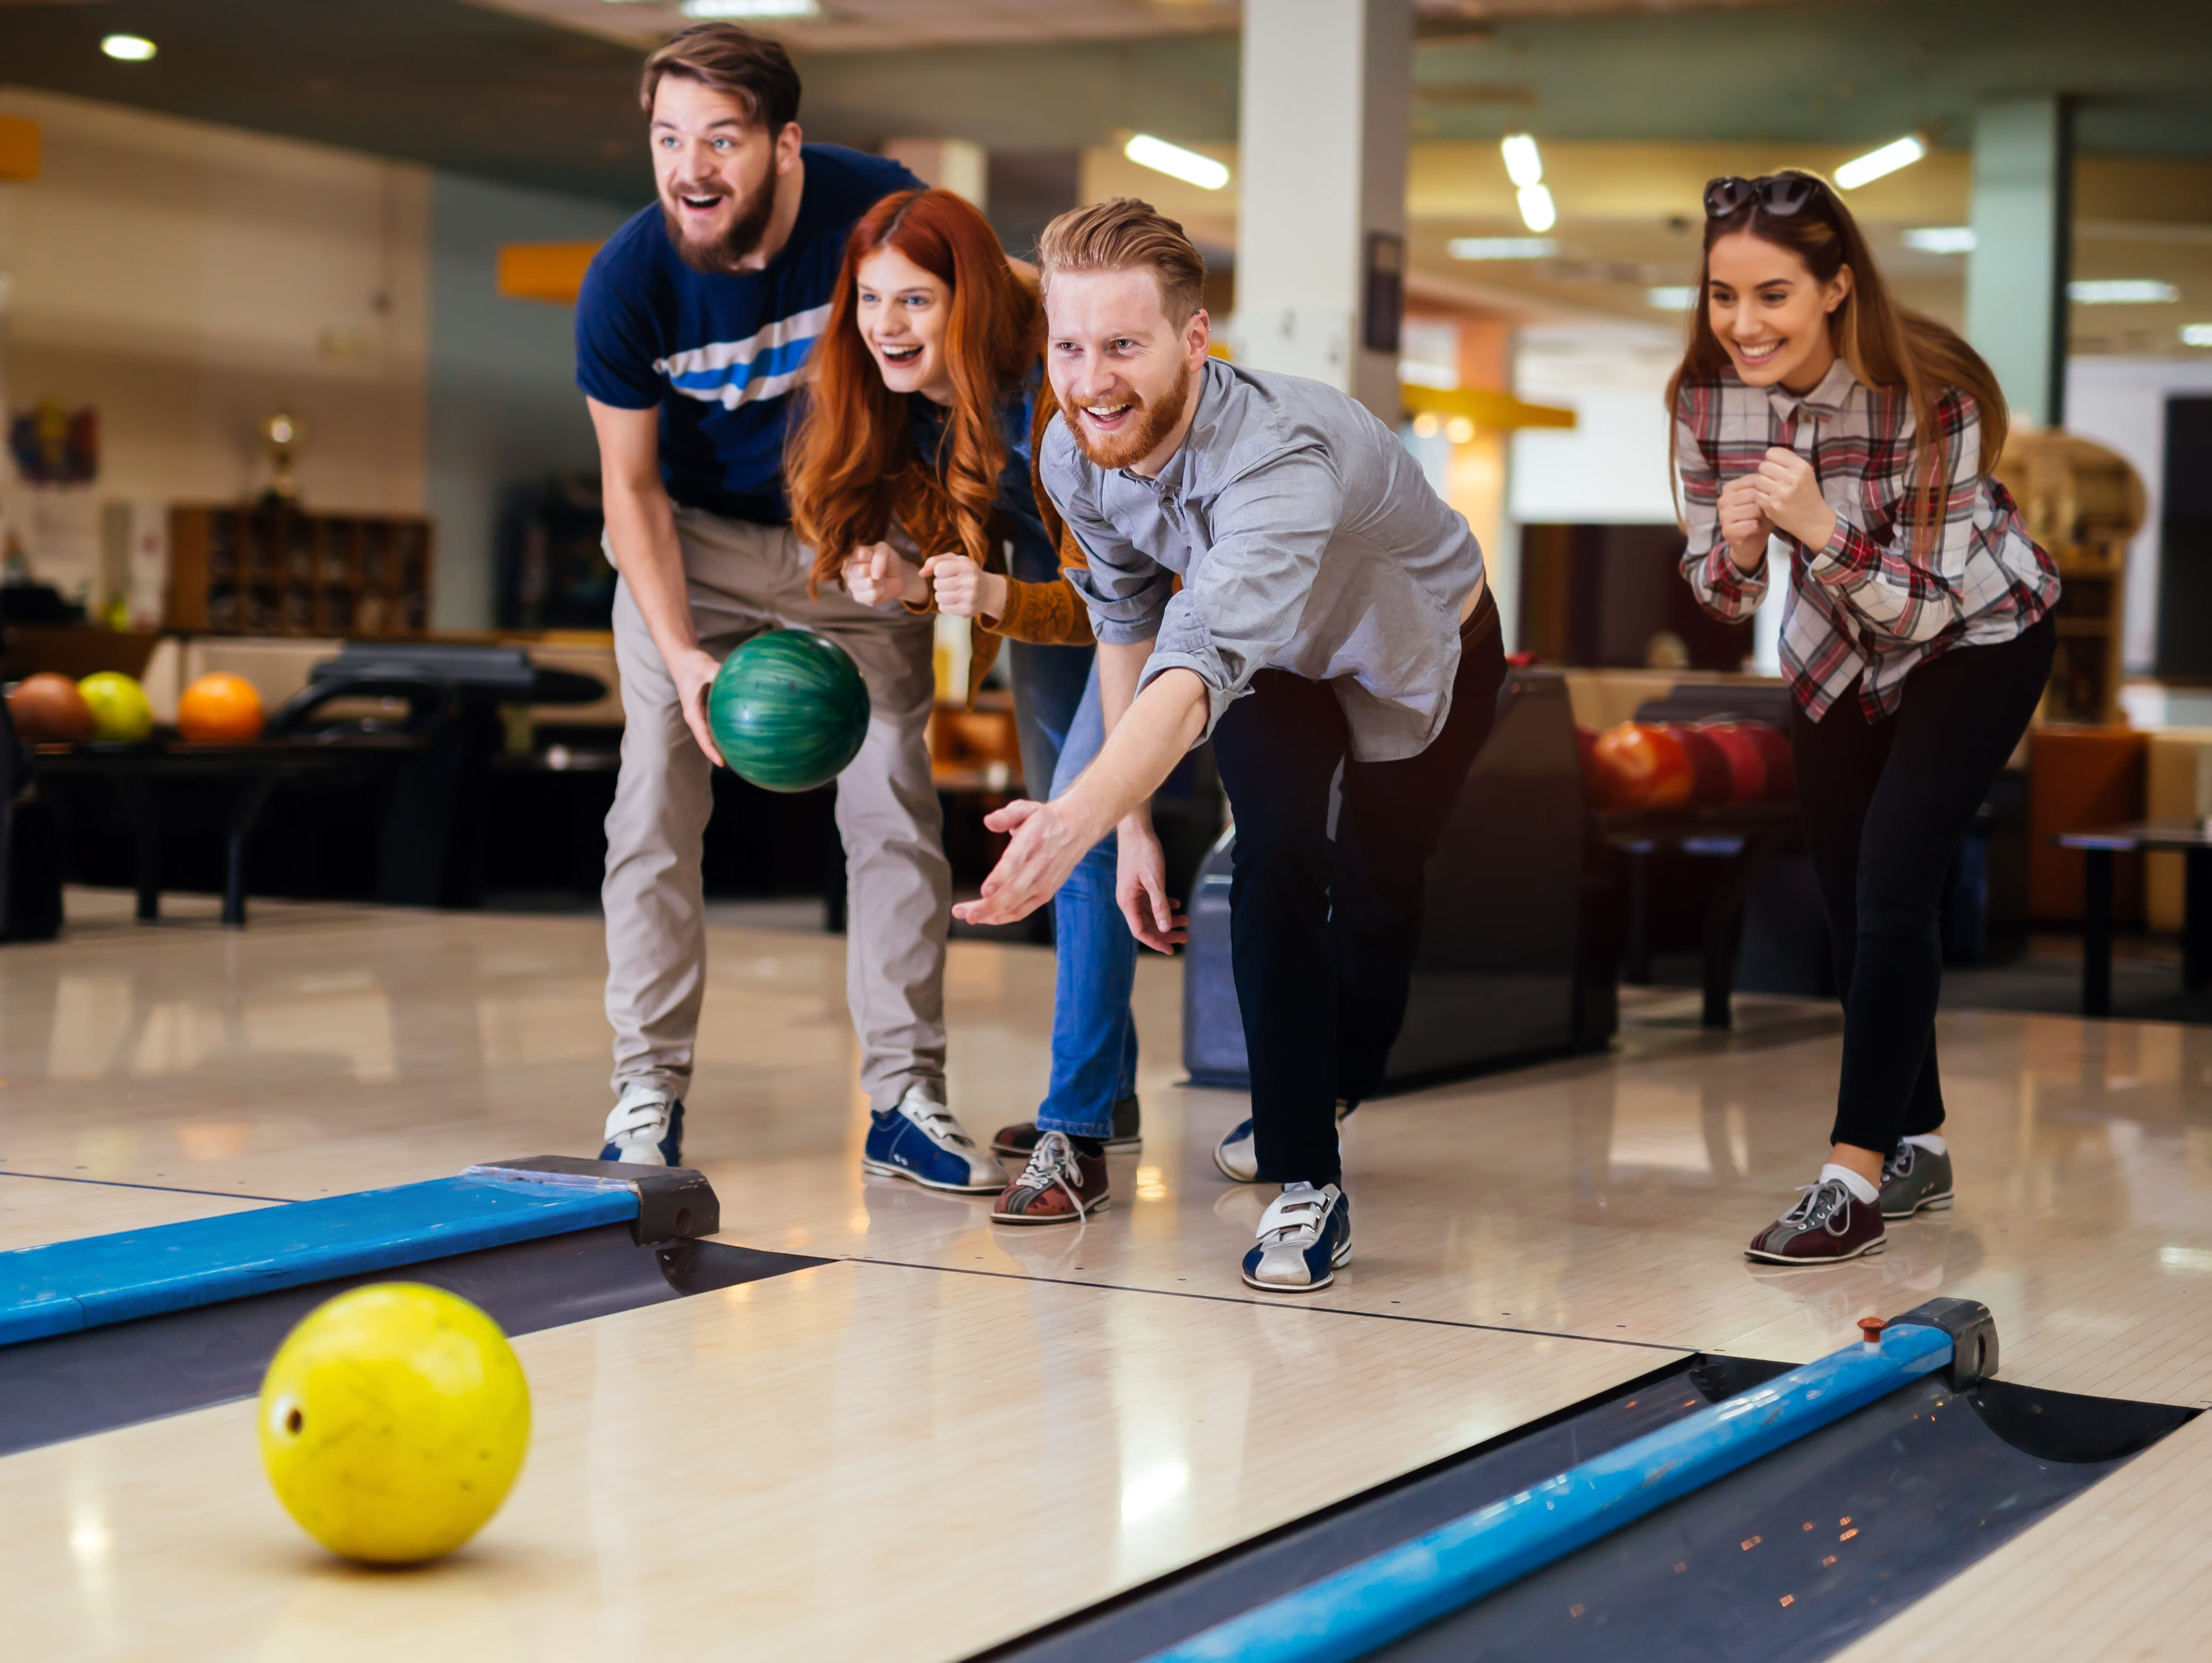 School's out! Father's Day is coming up. Get out of the heat! Enjoy 1 FREE game with the purchase of 1 game of bowling.